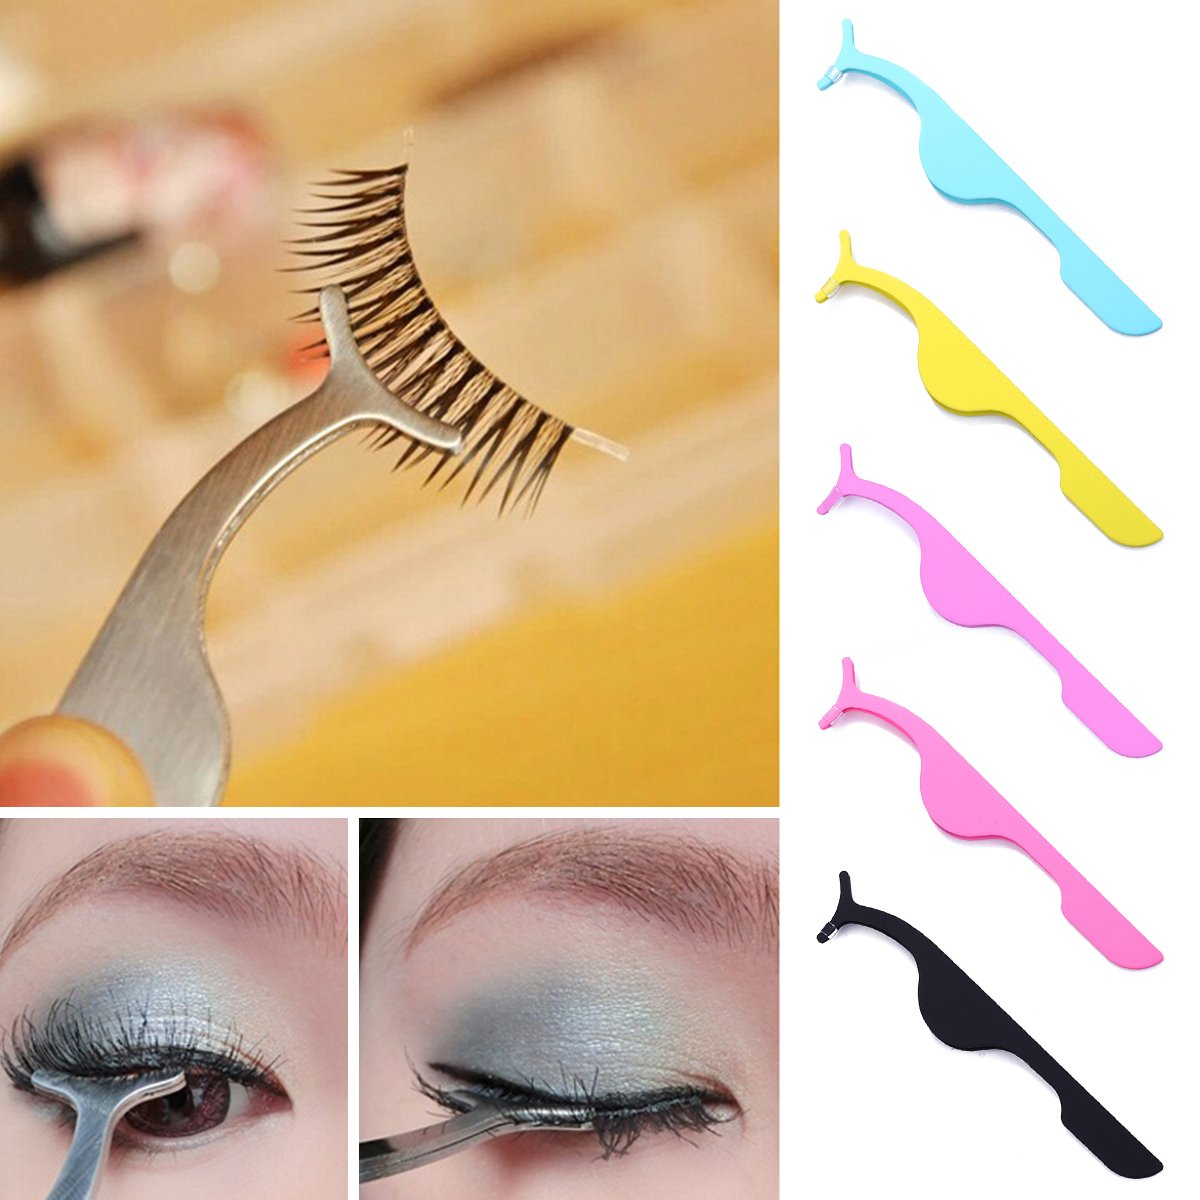 Beauty Tools Multifunctional False Eyelashes Stainless Auxiliary Eyelash Curler Tweezers Clip makeup Accessories tools